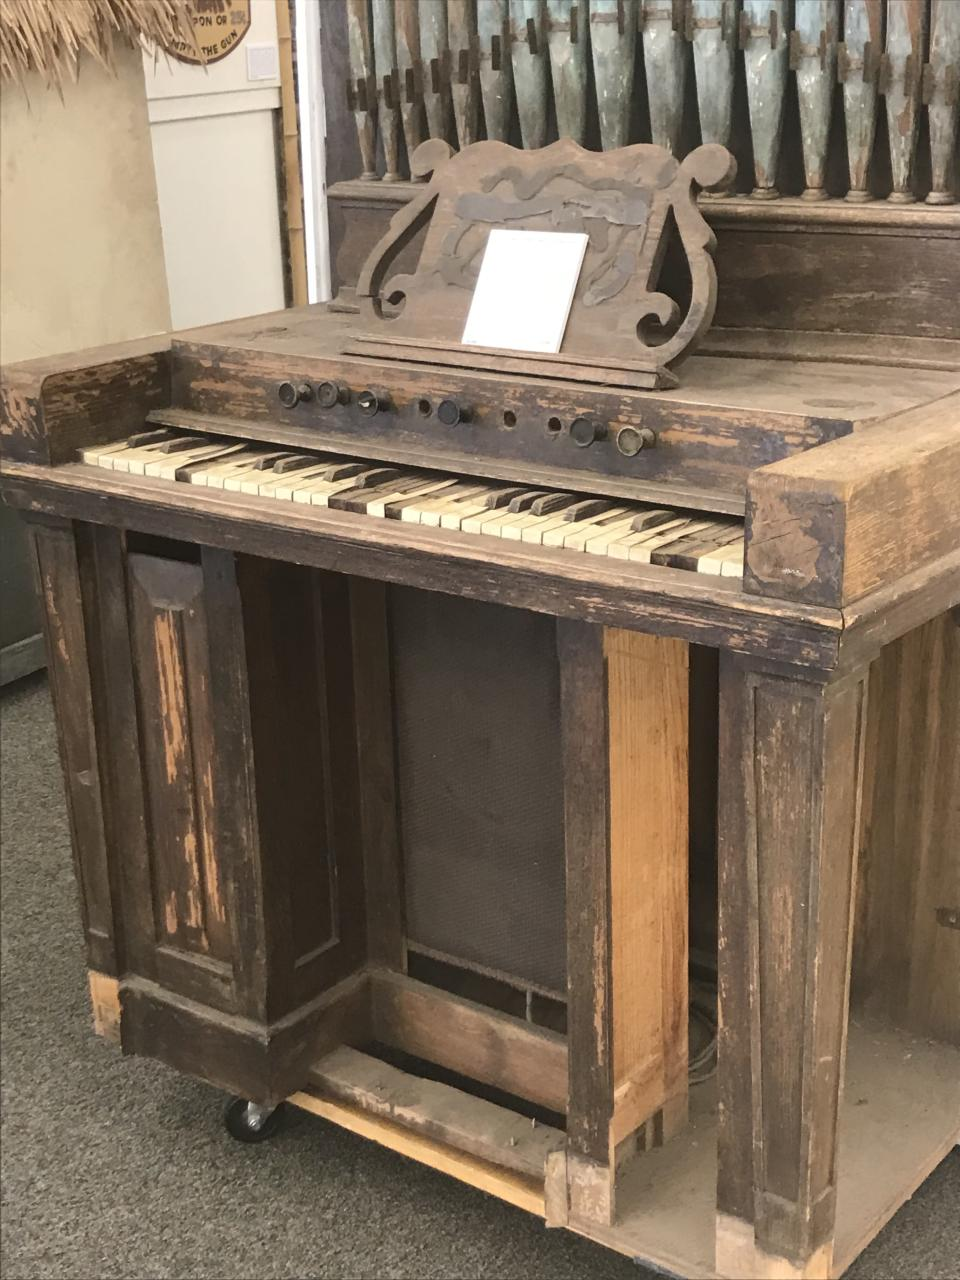 The organ prop was used at Disneyland for decades. (Photo: Yahoo Entertainment)